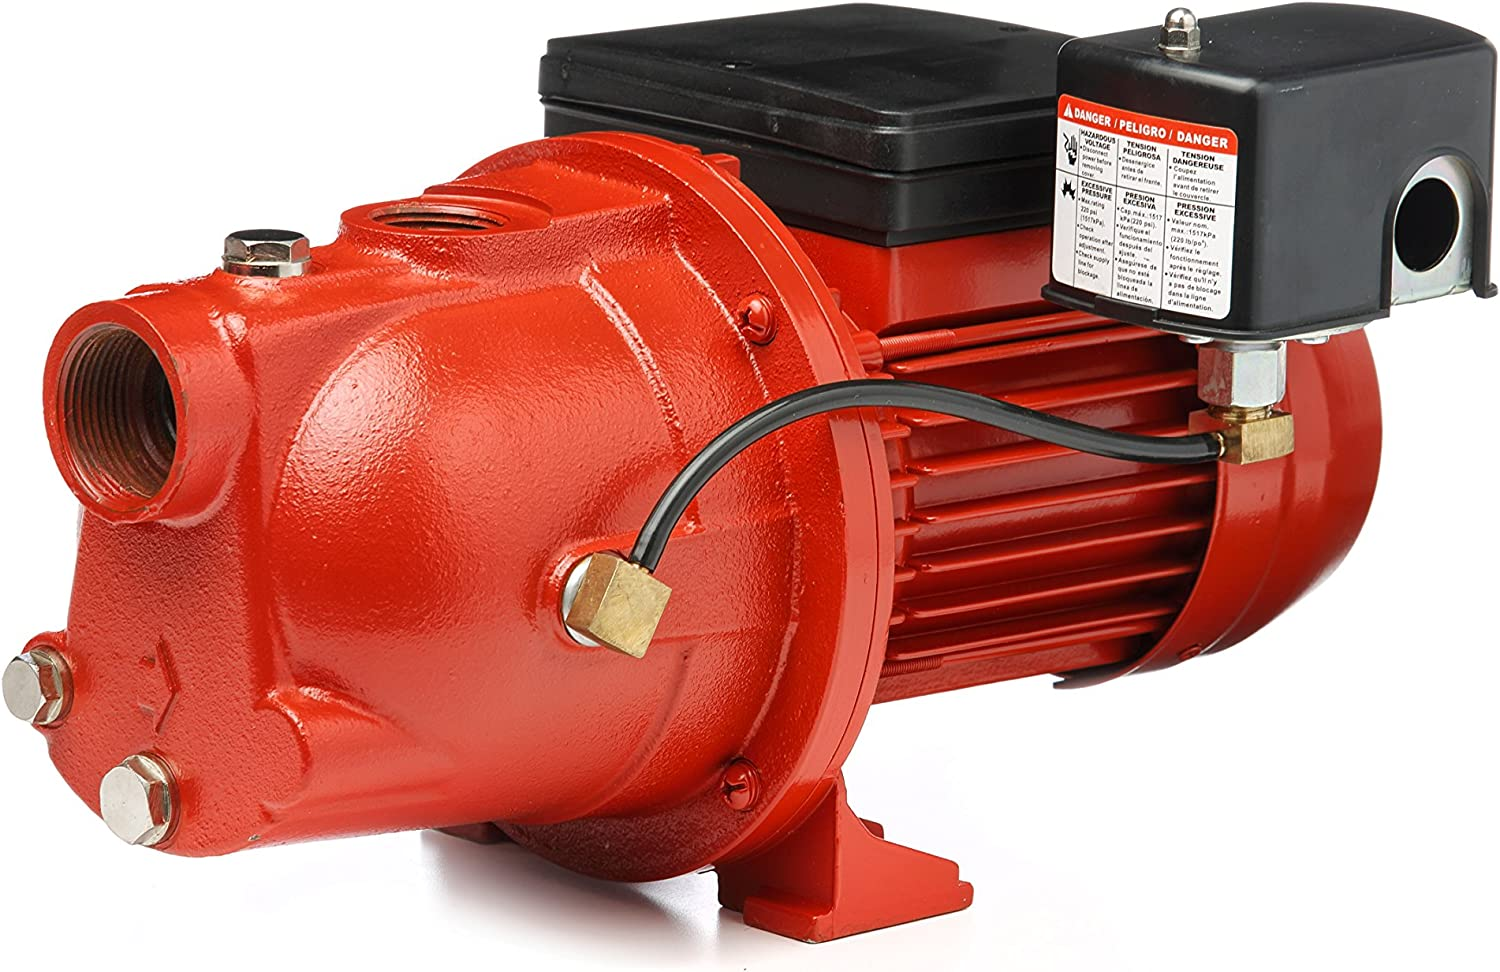 Red Lion RL-SWJ50 97080502 1/2-HP 13-GPM Cast Iron Shallow Well Jet Pump, Red